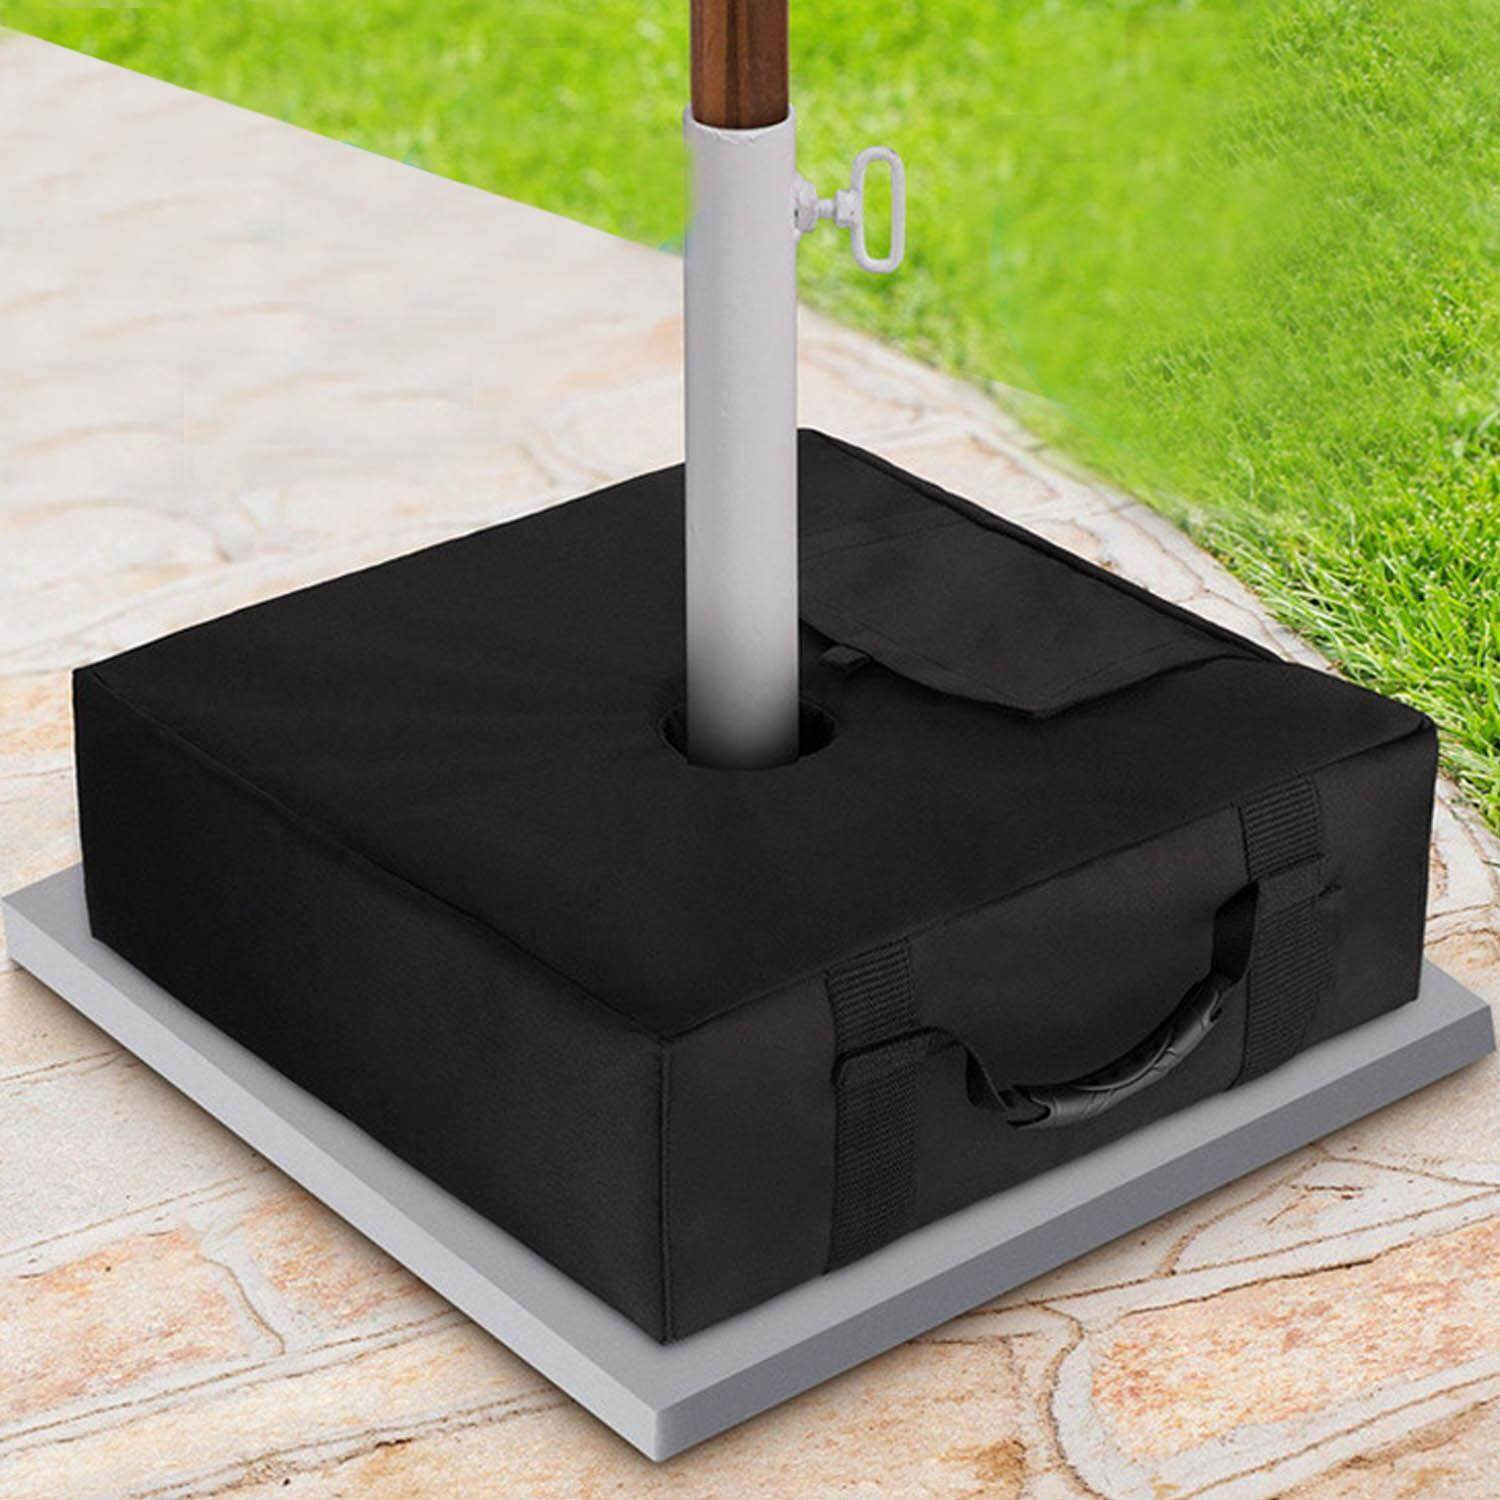 Square Detachable Patio Umbrella Base Weight Bag Stand for Offset Cantilever Patio Umbrella Flagpole